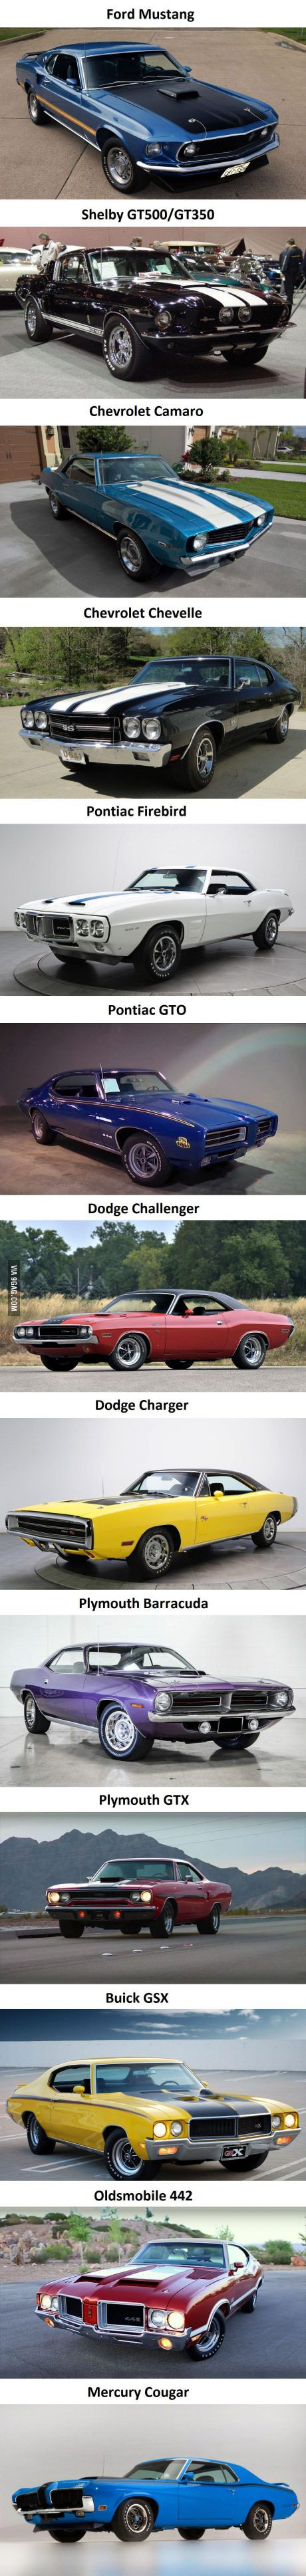 The Most Iconic Muscle Cars..Re-pin...Brought to you by #CarInsurance at #HouseofInsurance in Eugene, Oregon